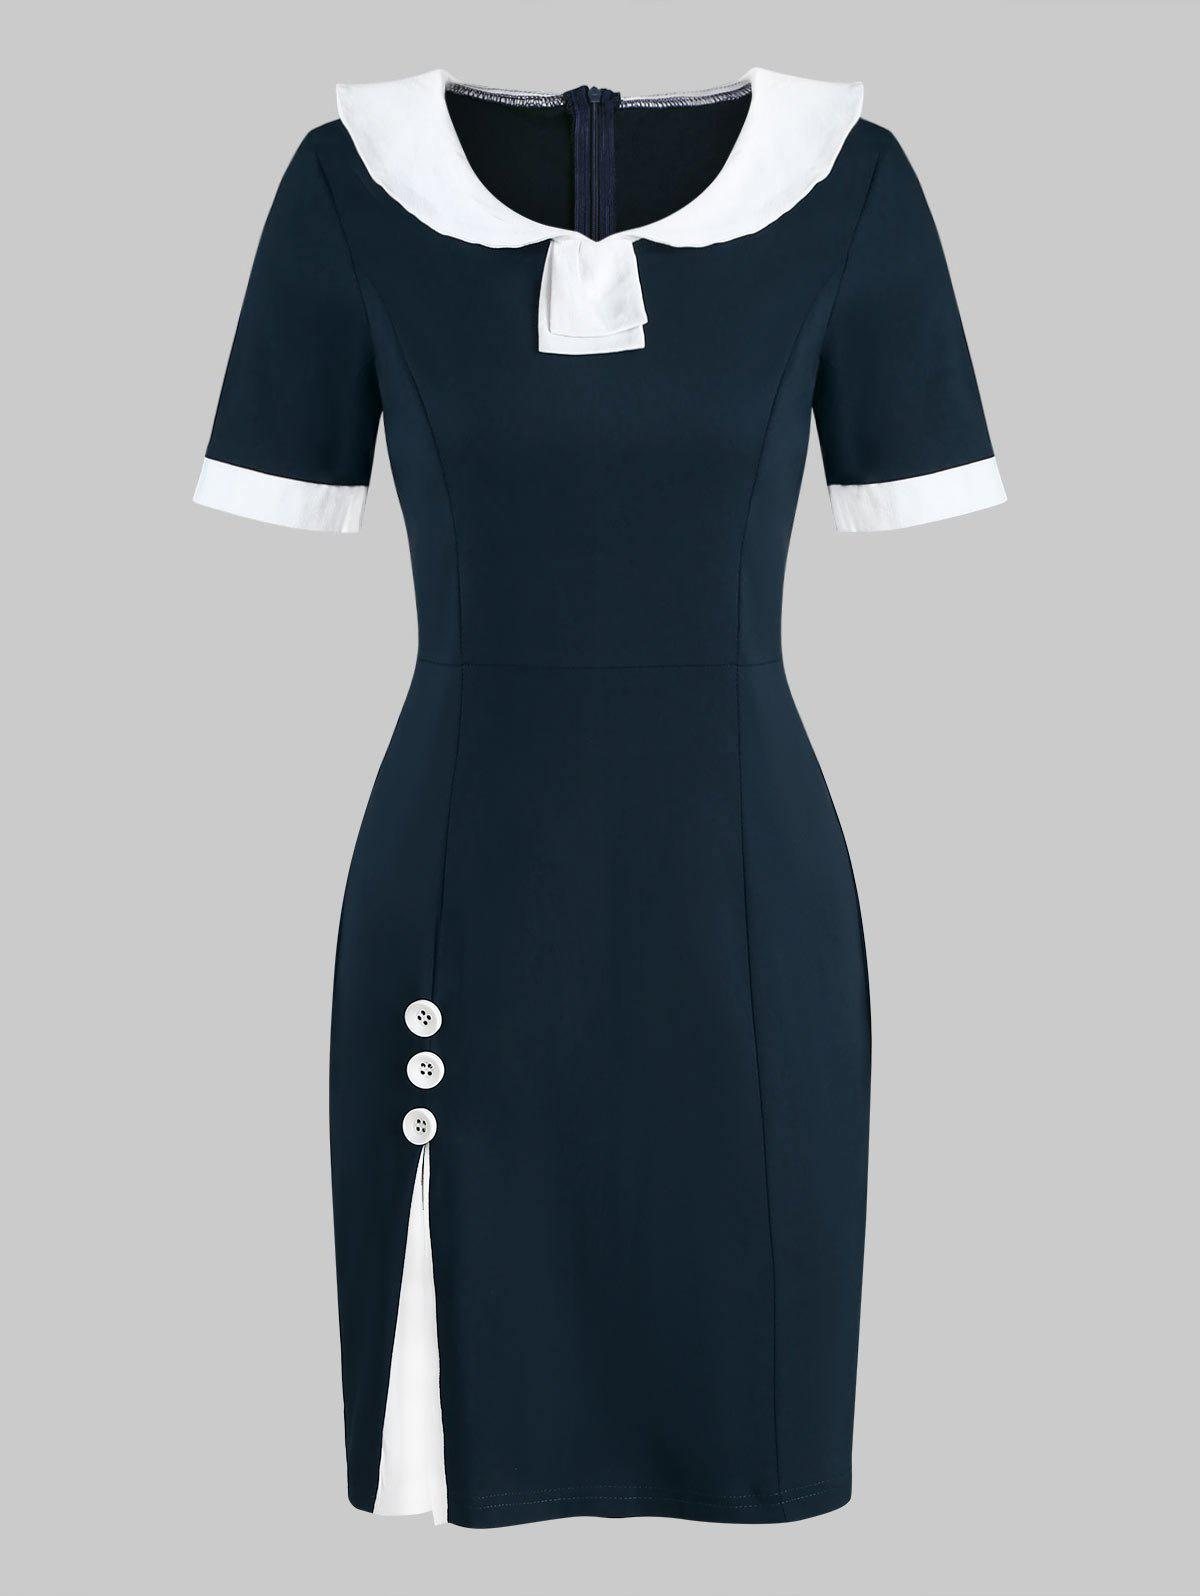 Two Tone Vintage Fitted Sailor Short Dress - MIDNIGHT BLUE L